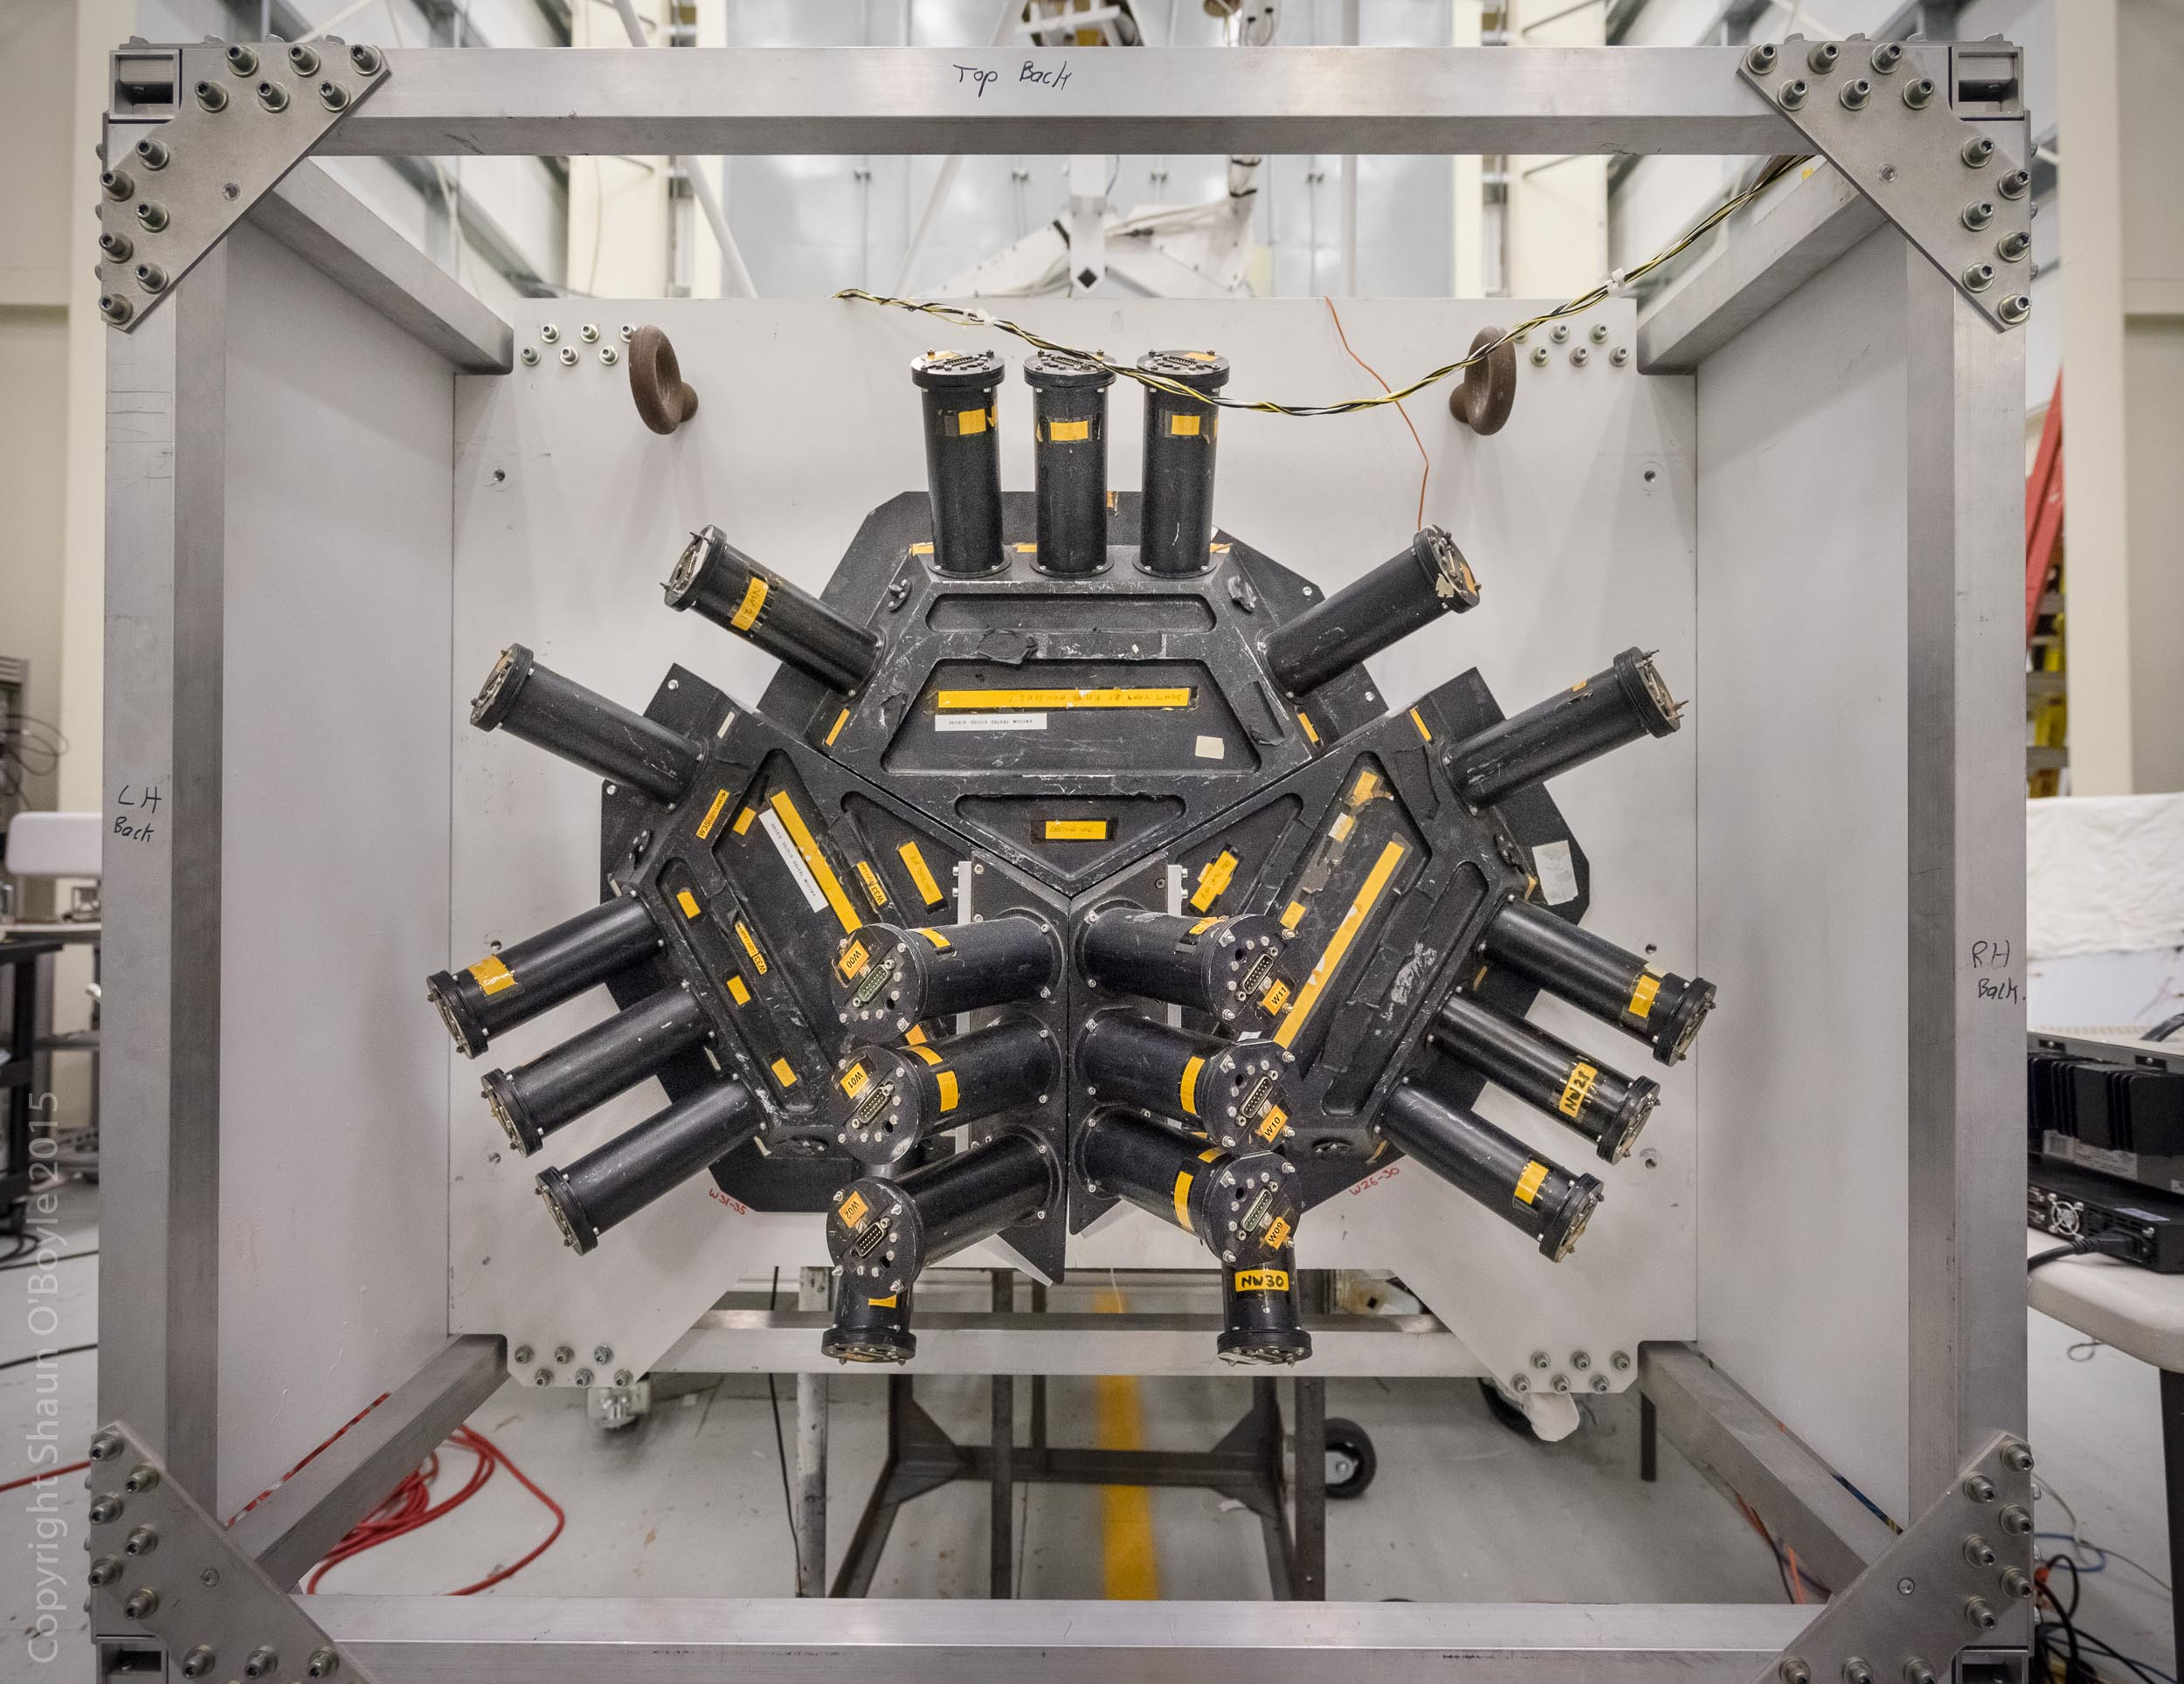 The GRIPS telescope will provide a near-optimal combination of high-resolution imaging, spectroscopy, and polarimetry of solar-flare gamma-ray/hard X-ray emissions from ~20 keV to  ~10 MeV. GRIPS did launched on January 19, 2016, for a long-duration flight over Antarctica at an altitude of up to 130,000 feet.